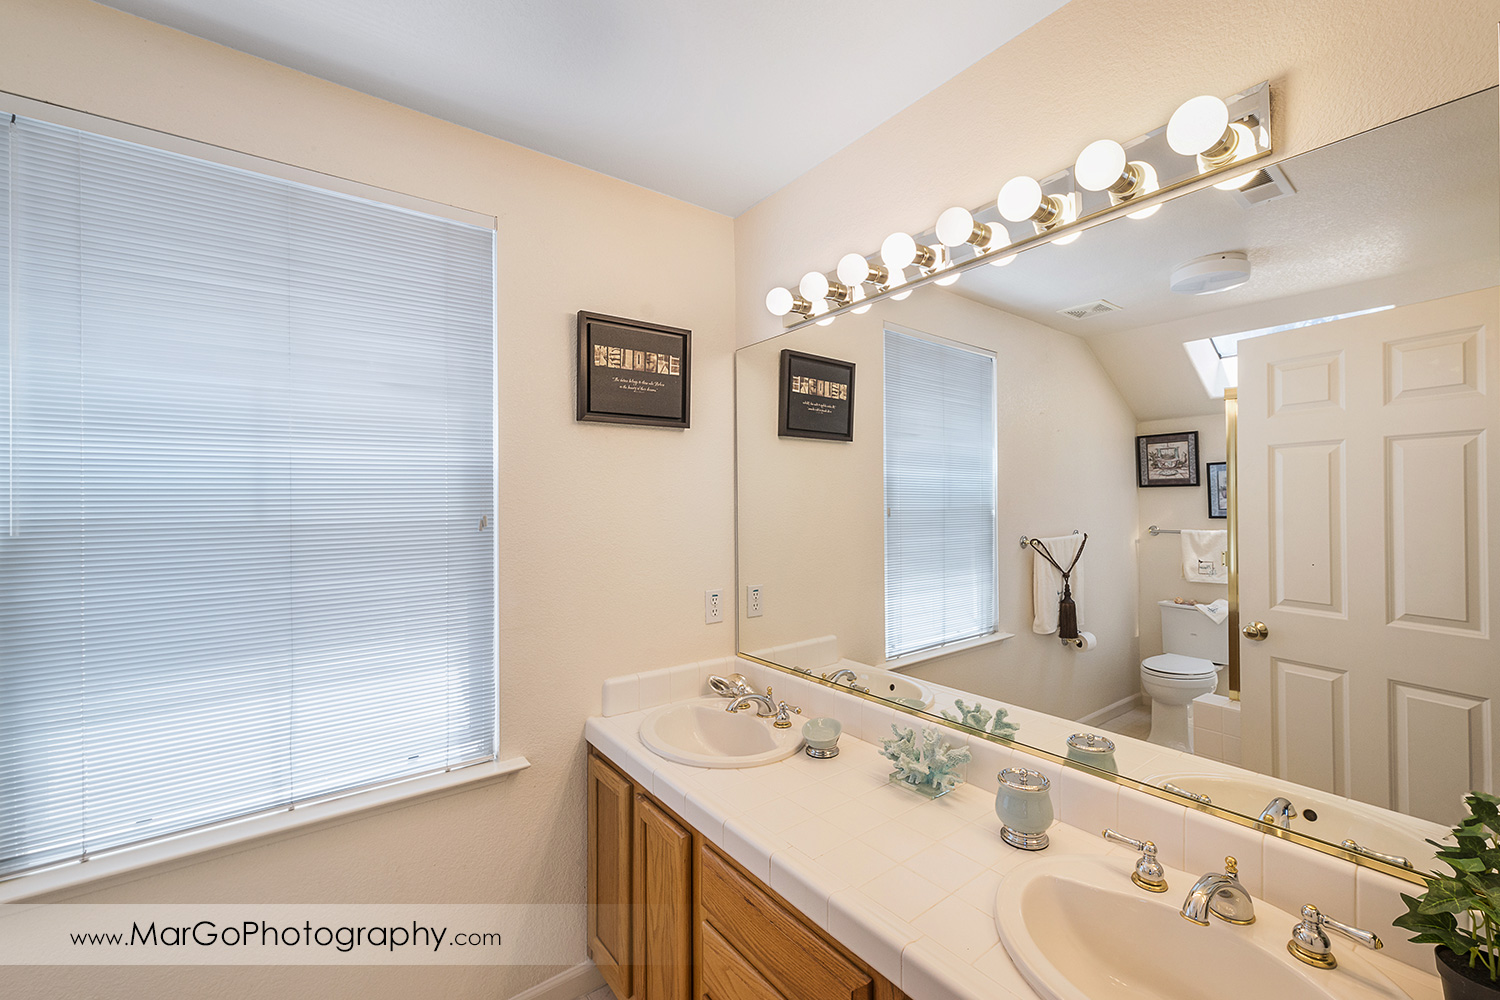 San Francisco house white bathroom with two sinks and big mirror - real estate photography